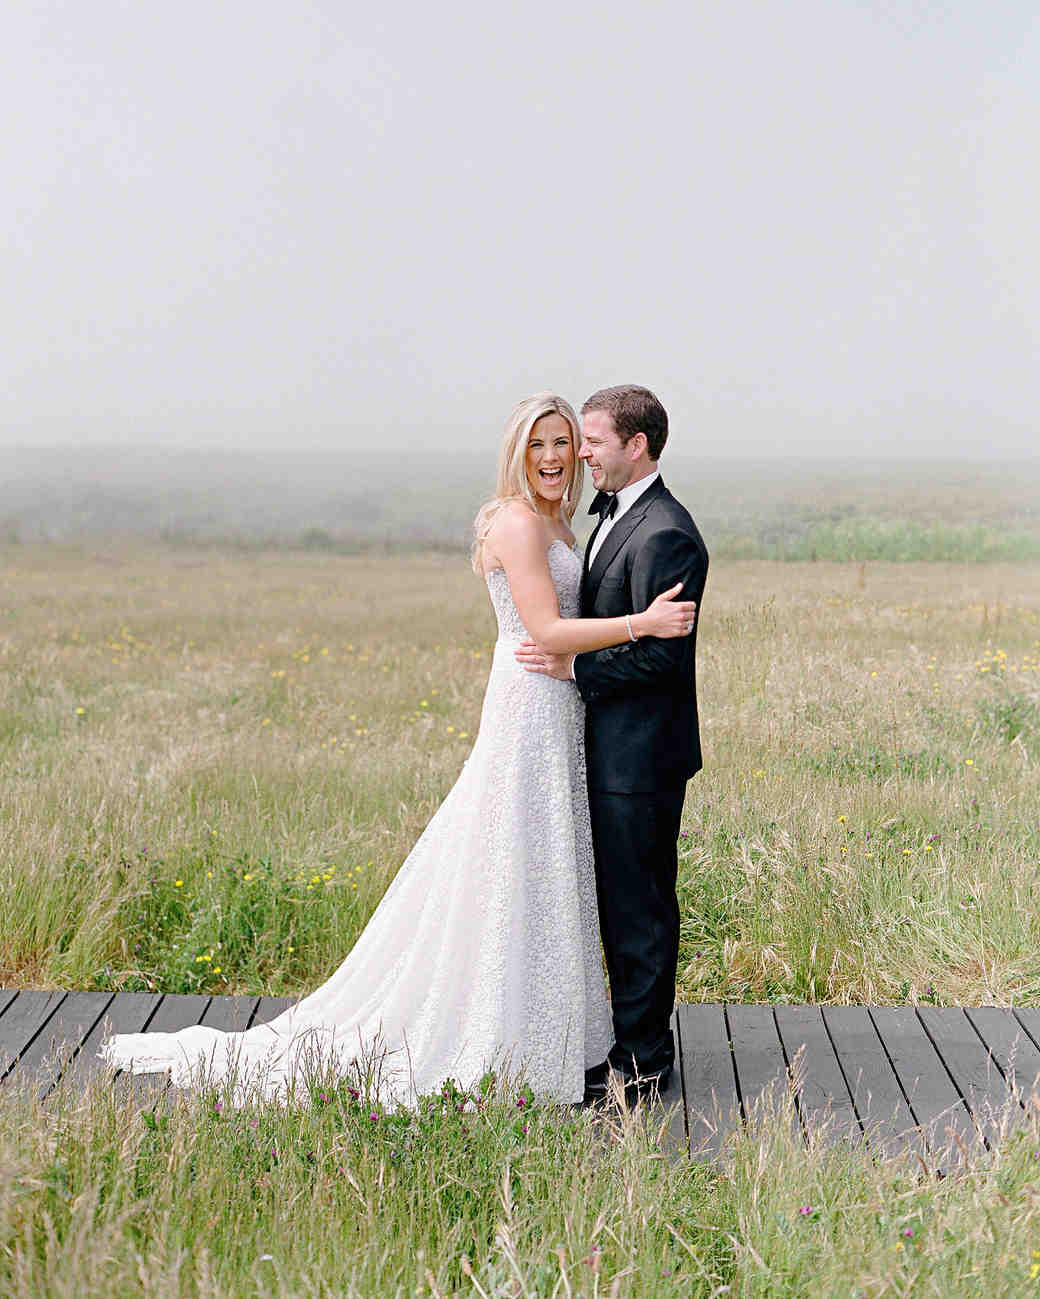 whitney zach wedding couple embracing in field bride laughing